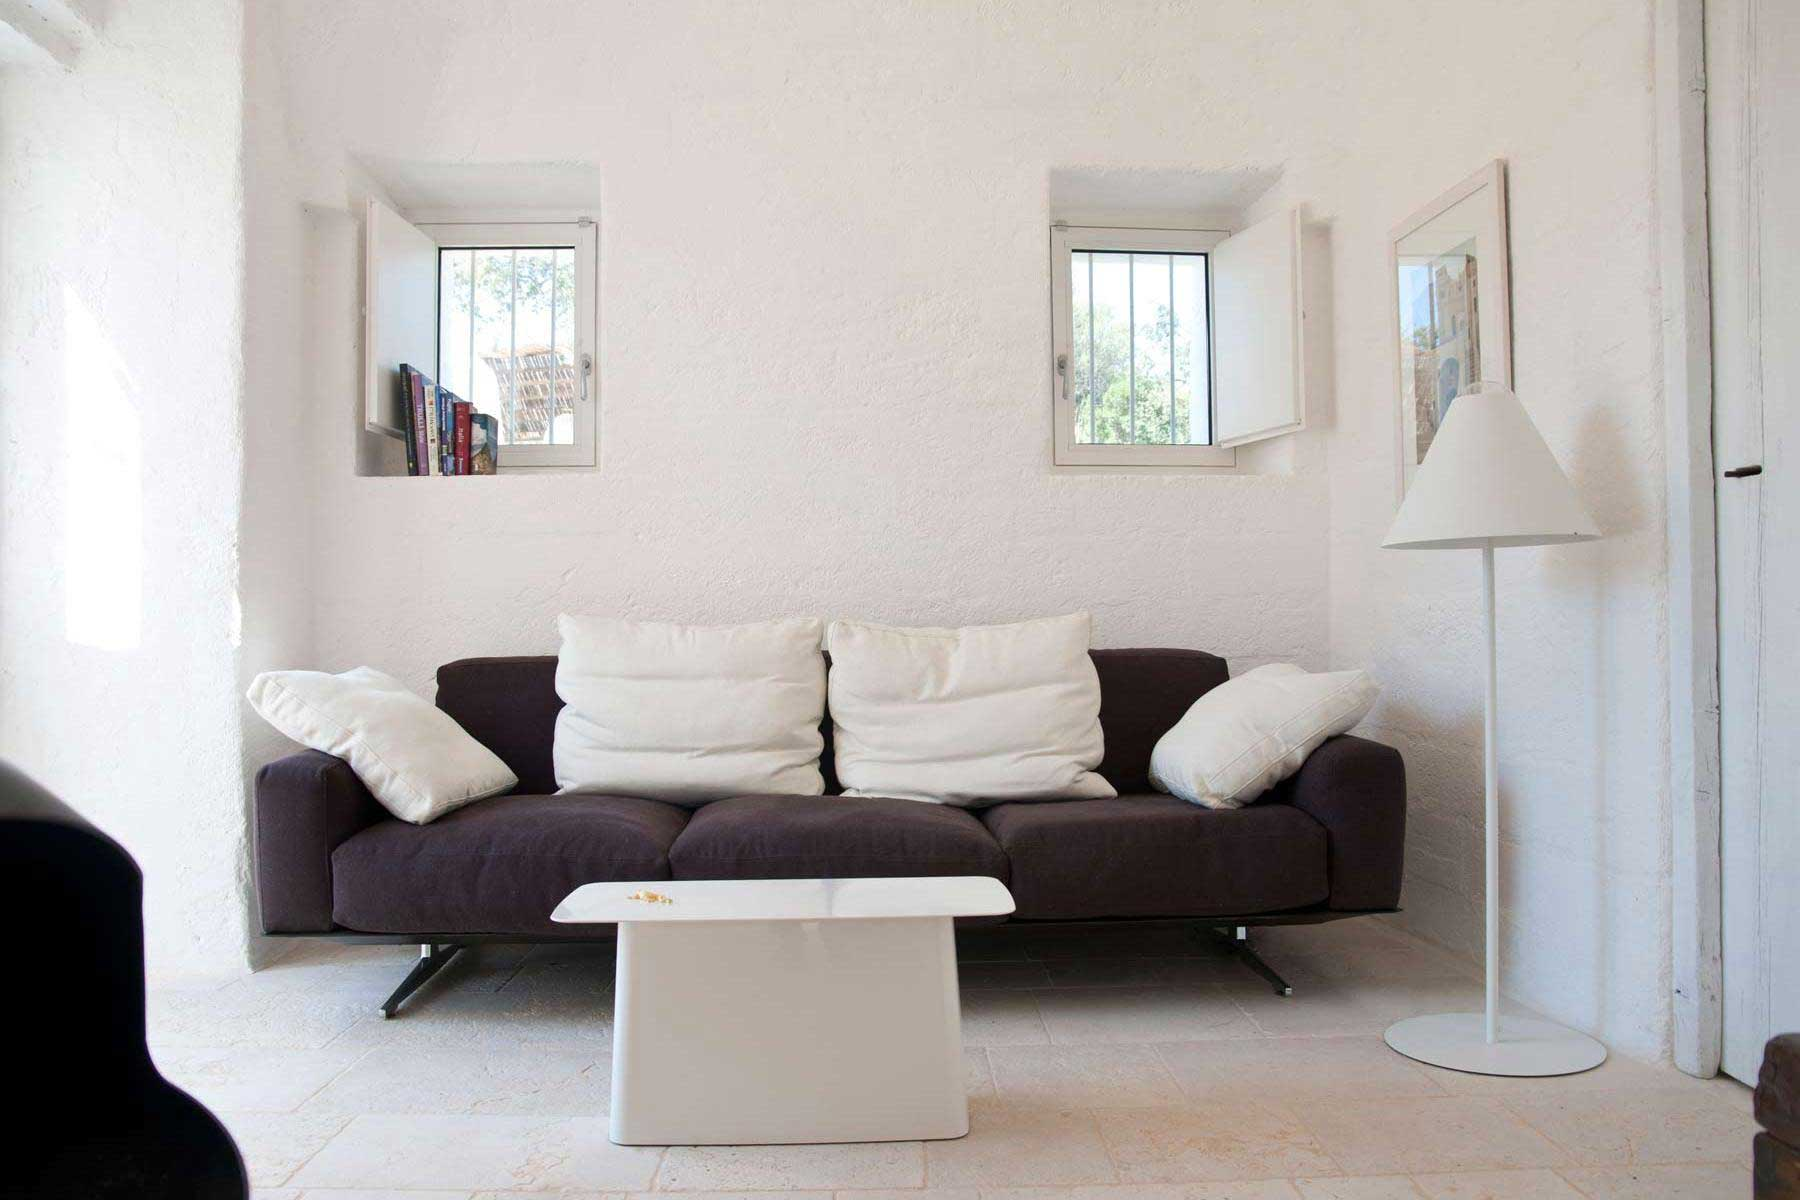 Living room: we plan for you project for your house to buy in Puglia Valle d'Itria